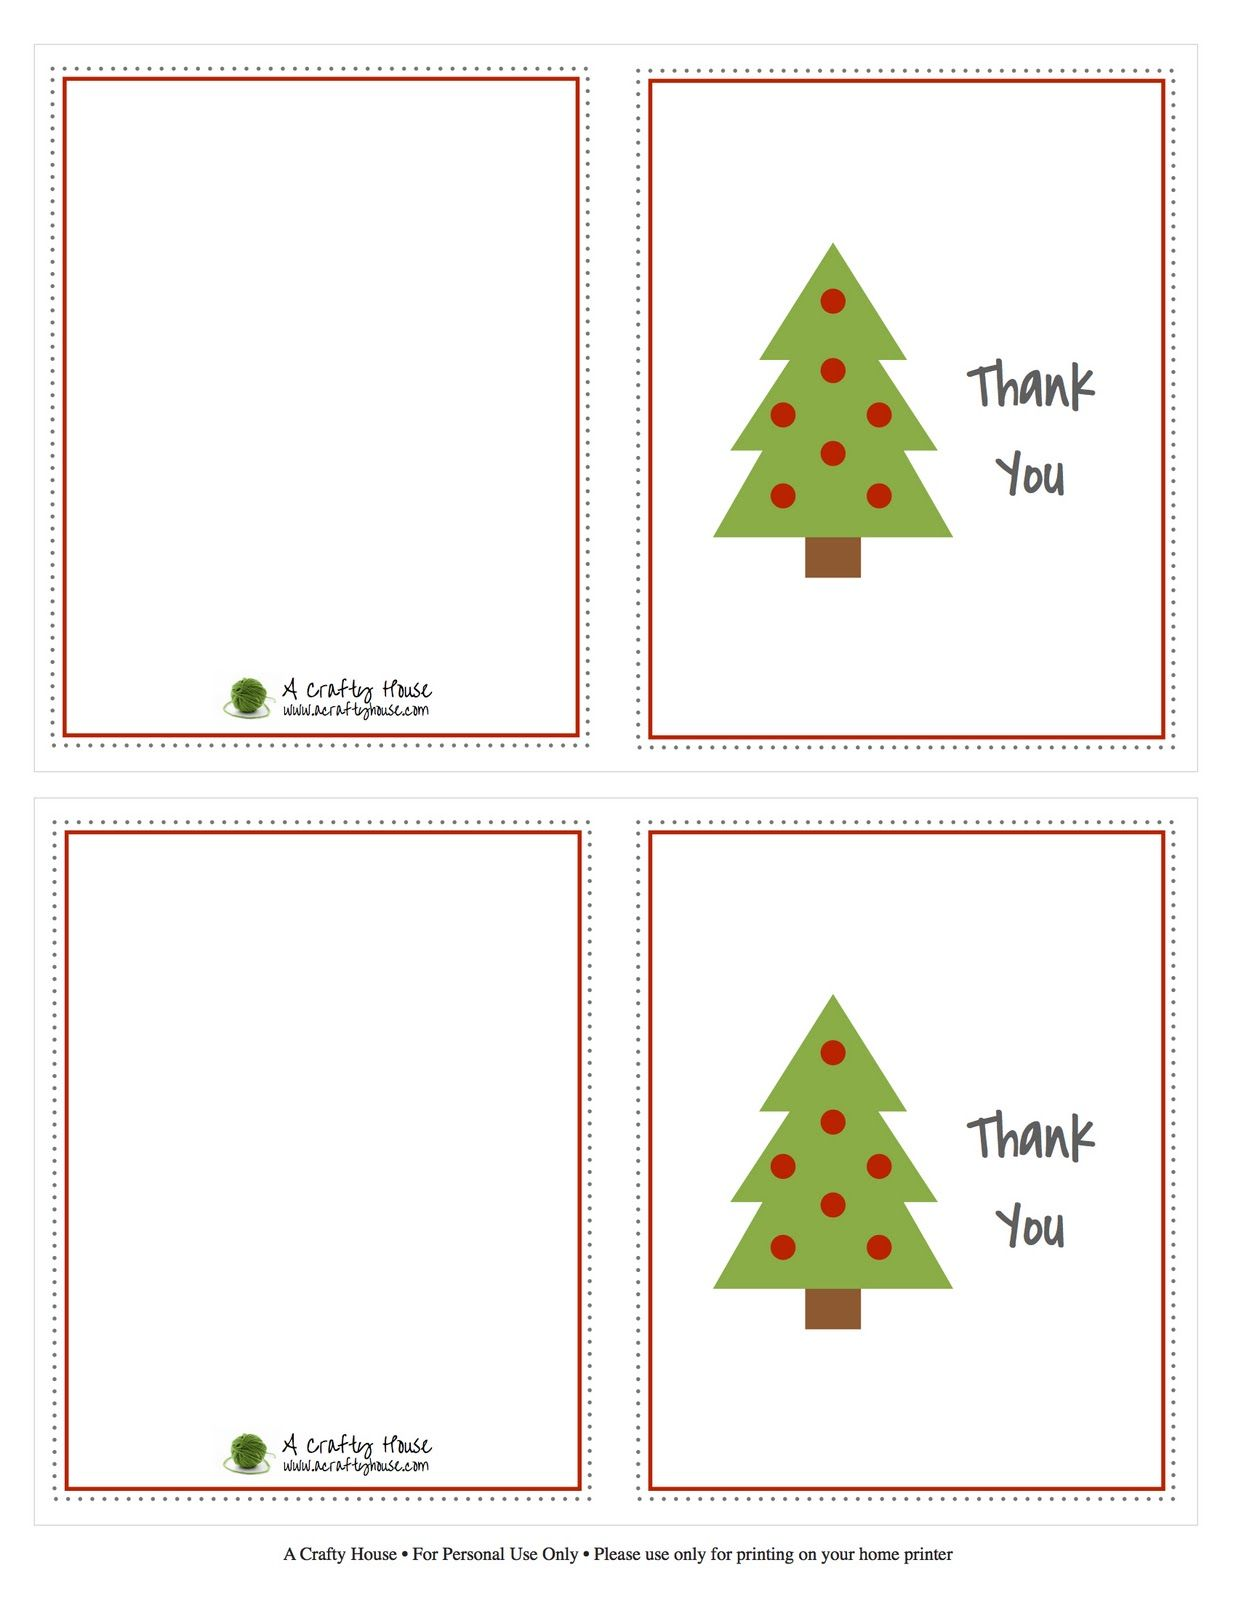 Free Printable Christmas Card Thank You Note A Crafty House Knitting And Crochet Pa Christmas Note Cards Christmas Card Sentiments Printable Christmas Cards